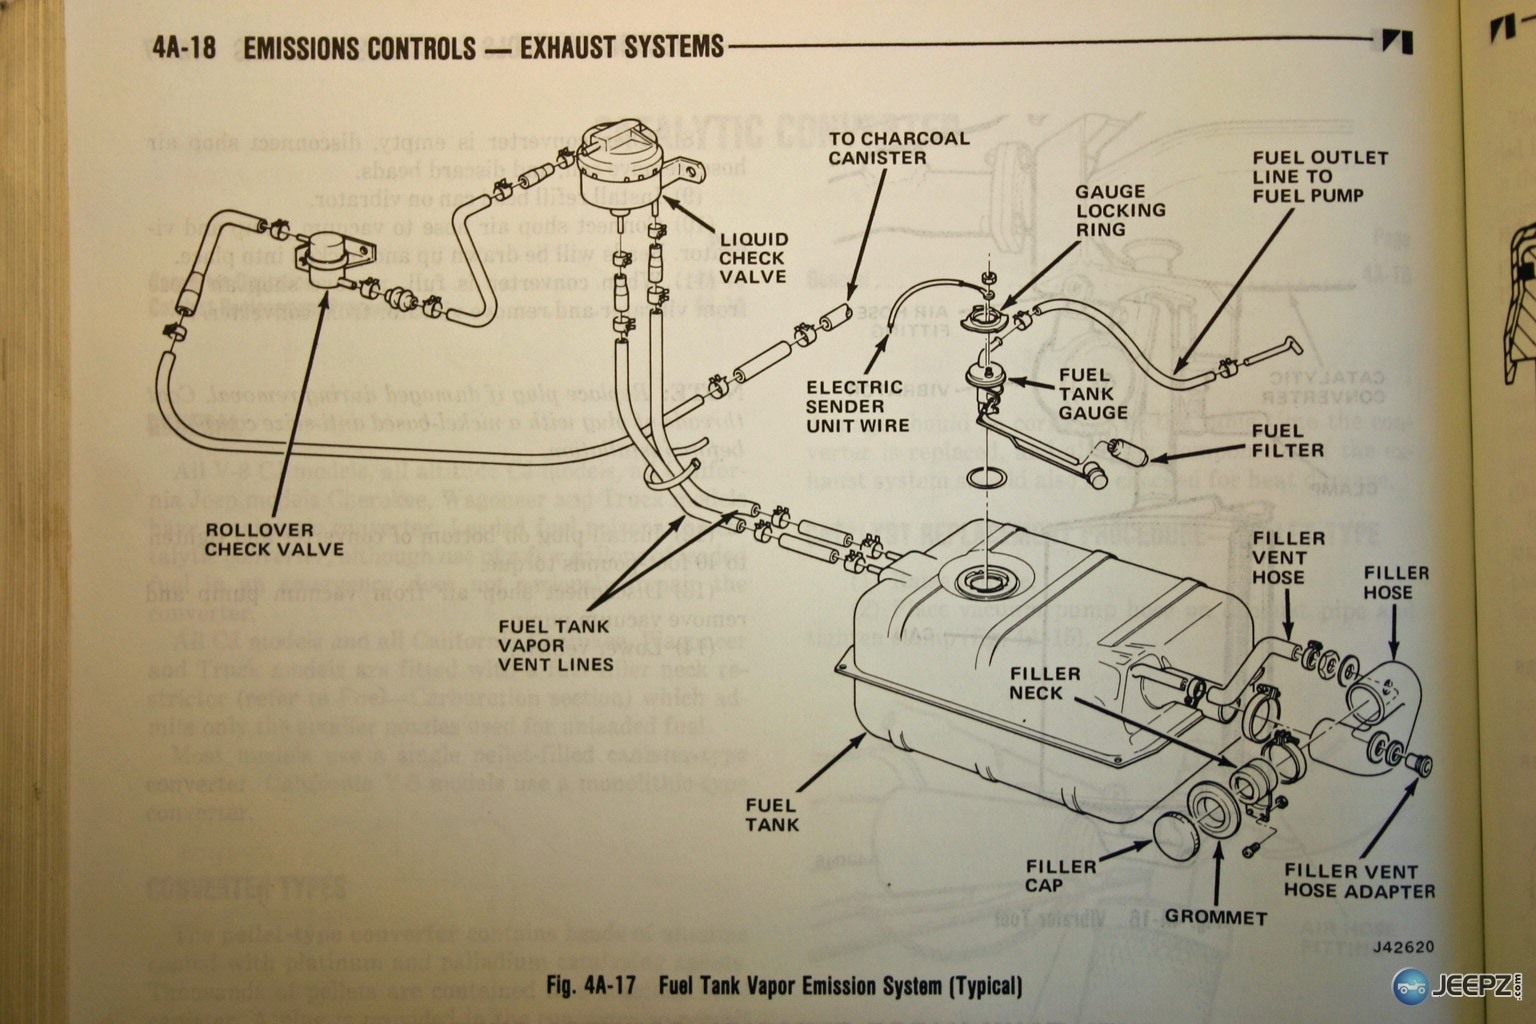 Fuel Check Valve?!-1977-jeep-fuel-tank-emission-